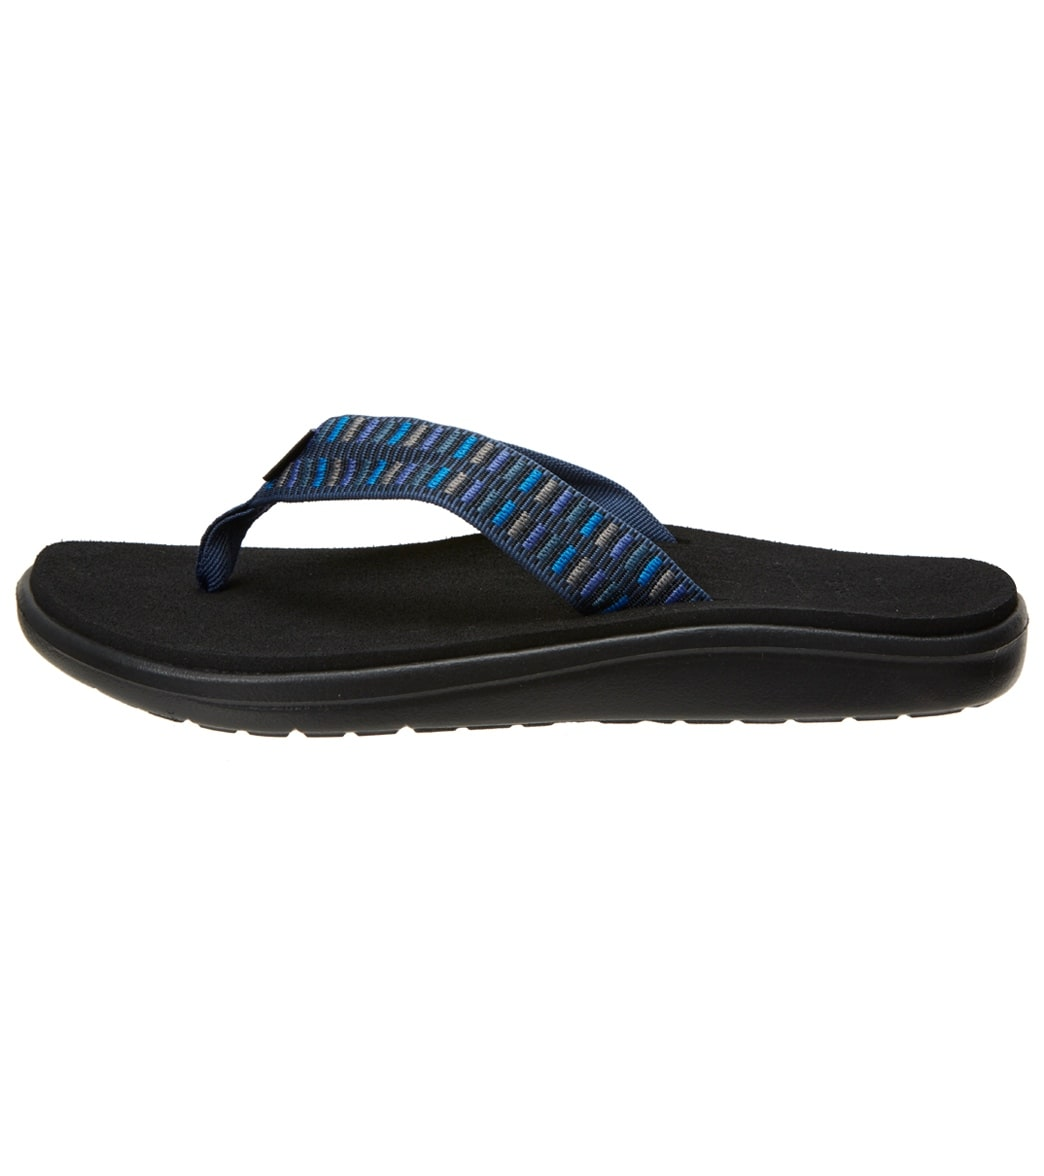 df963279995da Teva Men s Voya Flip Flop at SwimOutlet.com